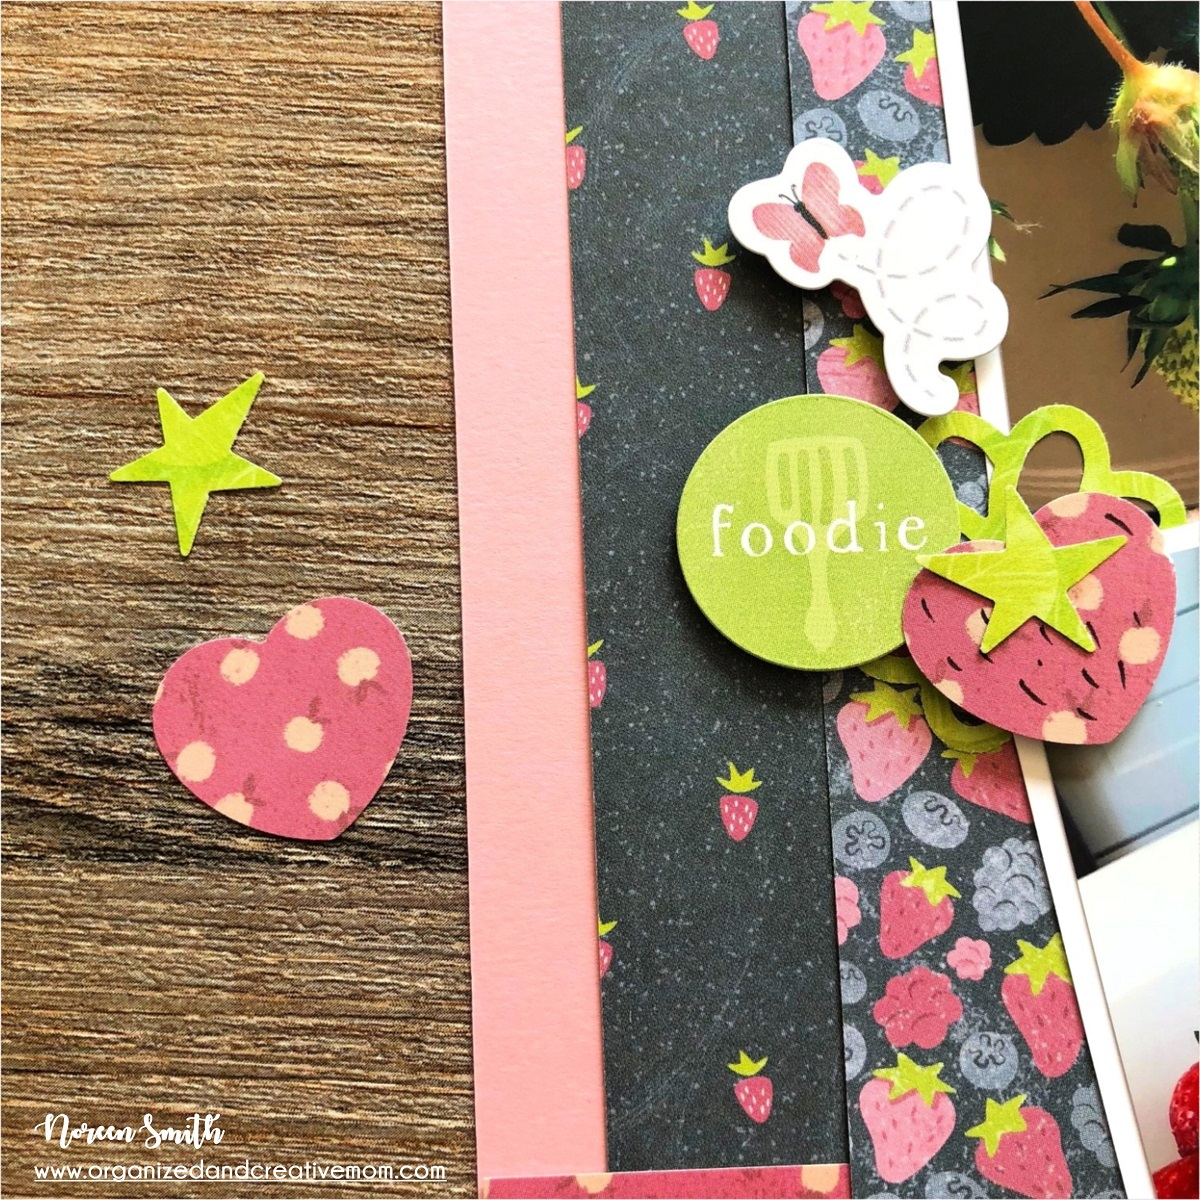 Scrapbook Layout Designed by Noreen Smith featuring the Locally Grown Collection by Creative Memories | Creative Scrapbooker Magazine